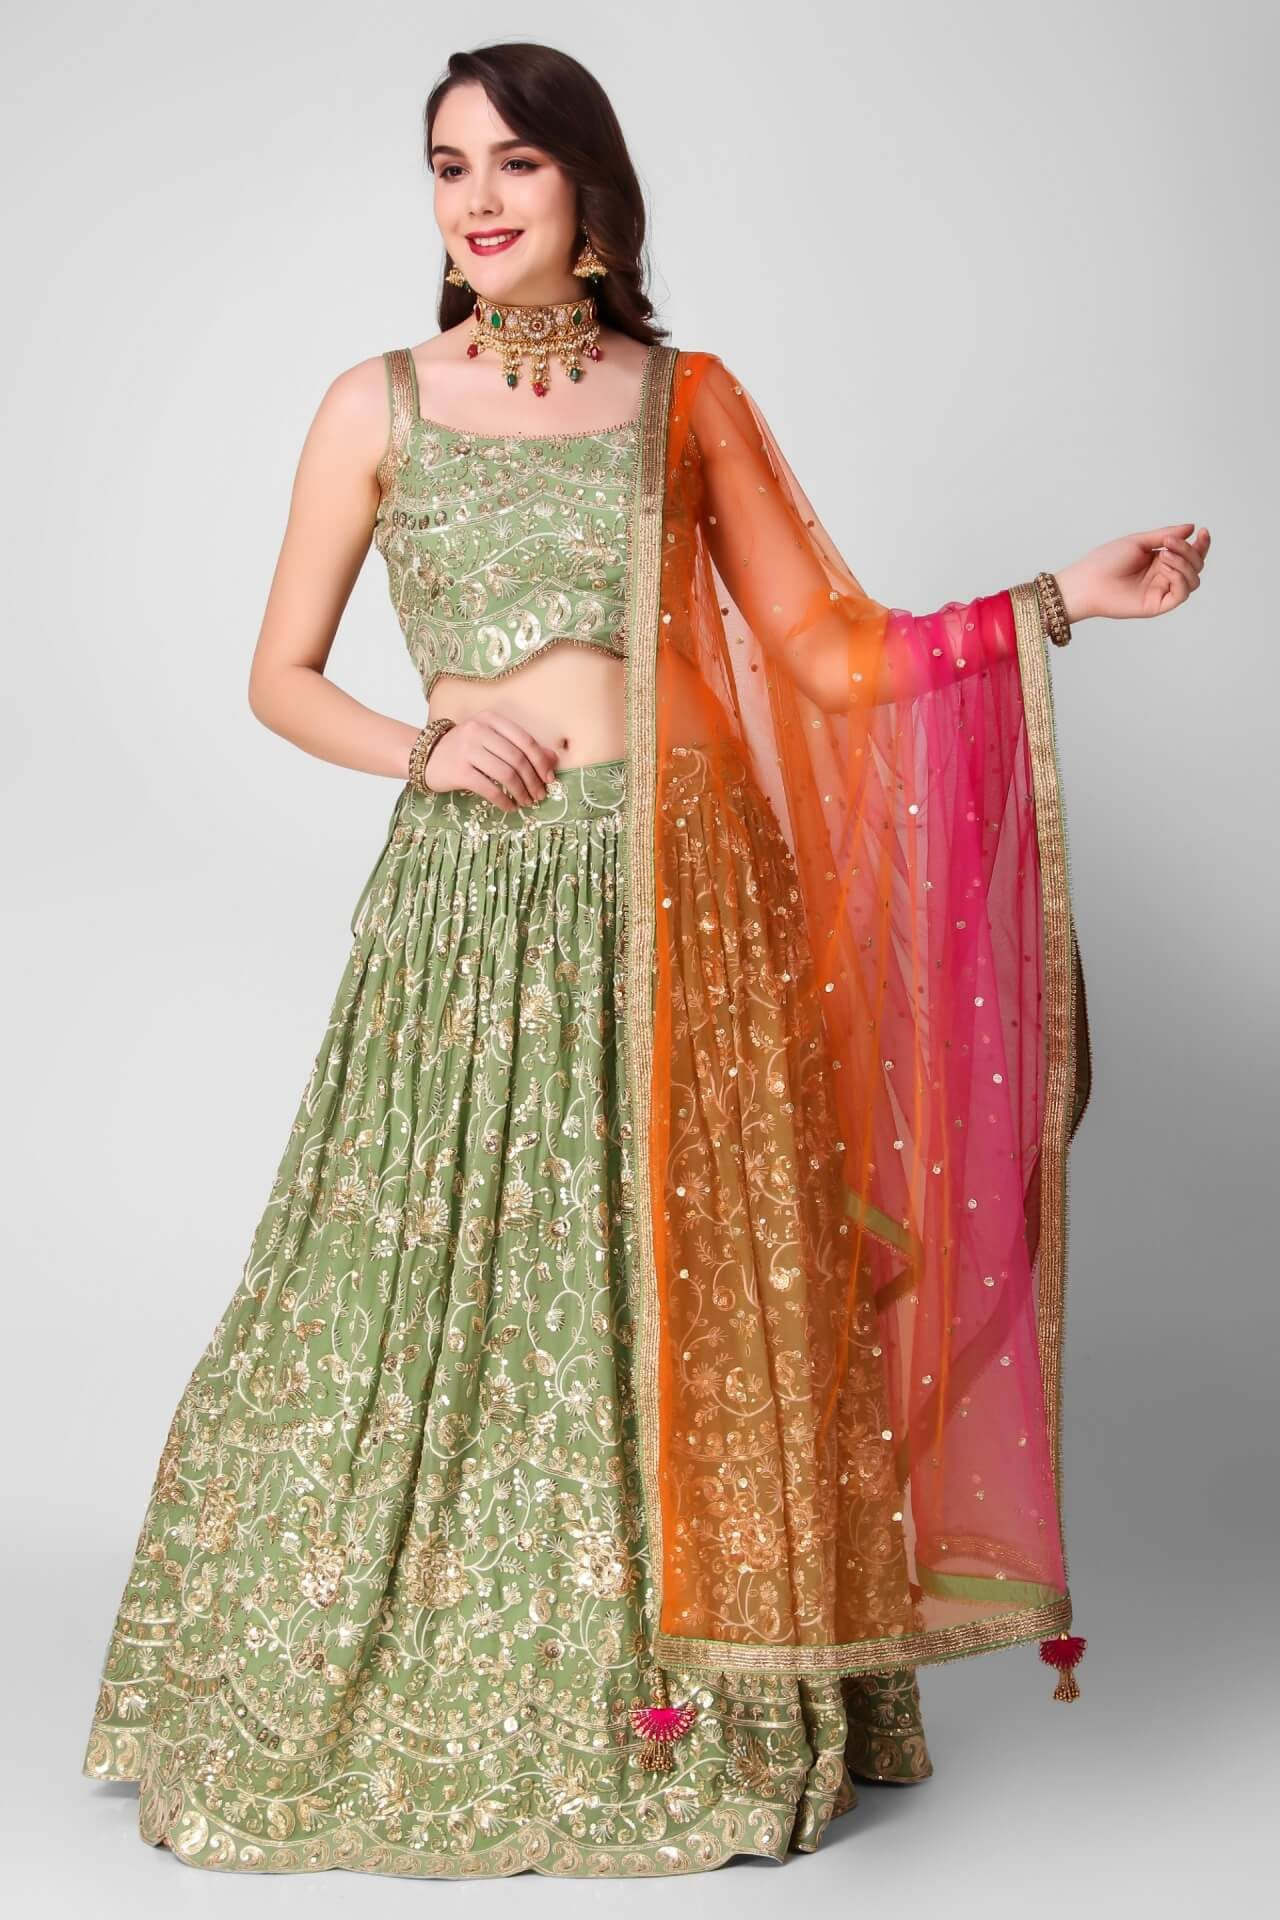 Heavy Embroidered Green Georgette Lehenga With Orange-Pink Dupatta